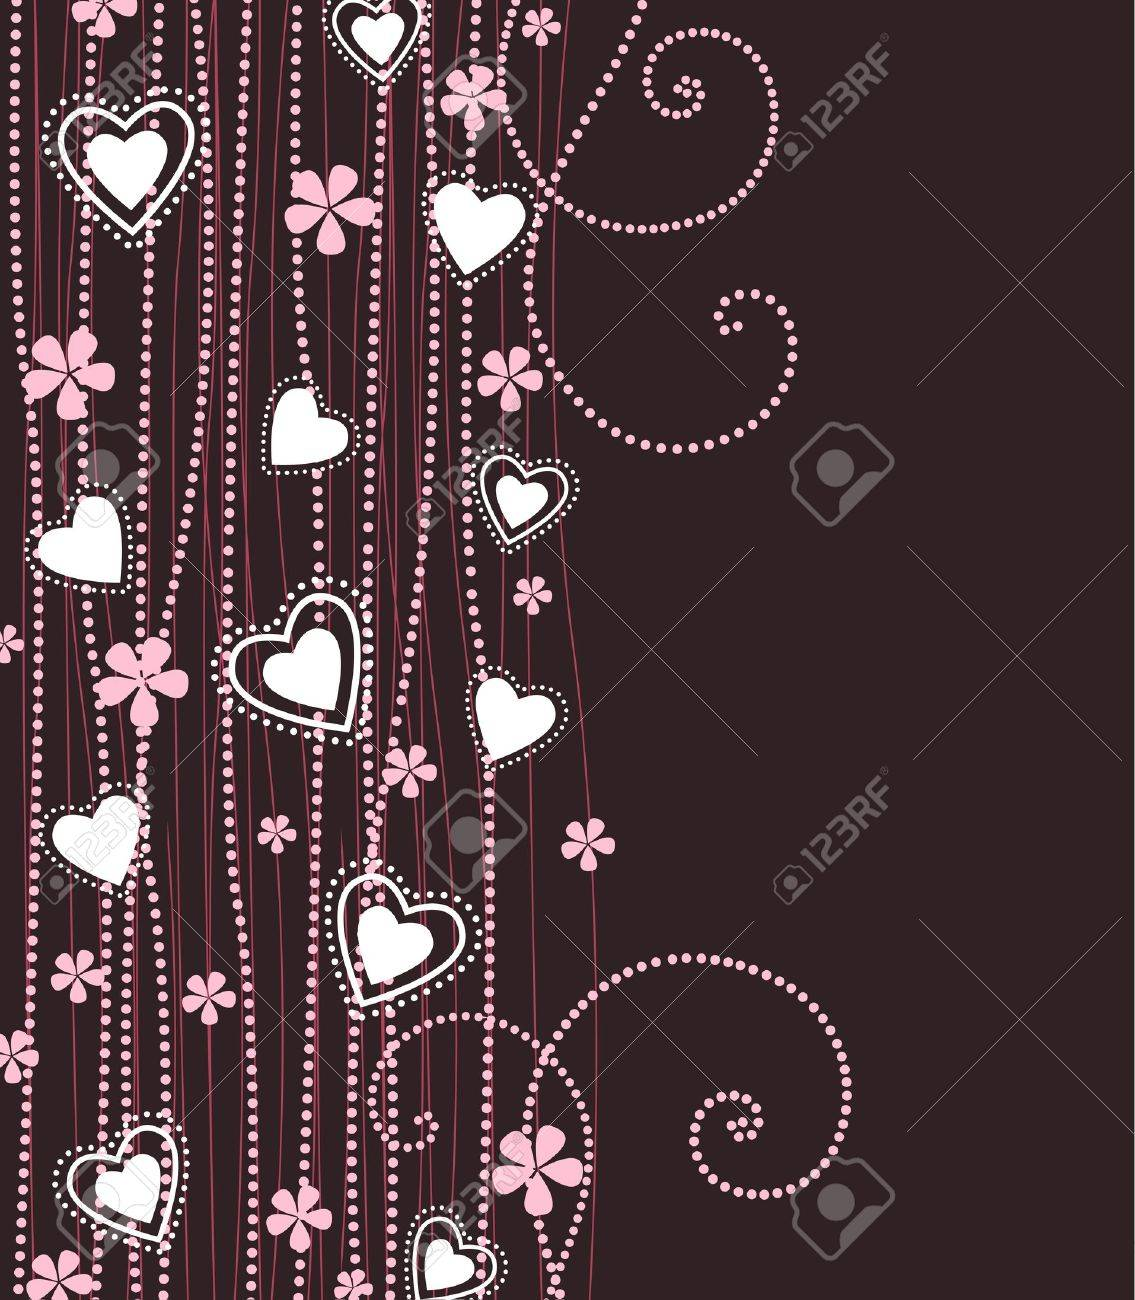 hearts with pink flowers on a violet background Stock Vector - 17576477